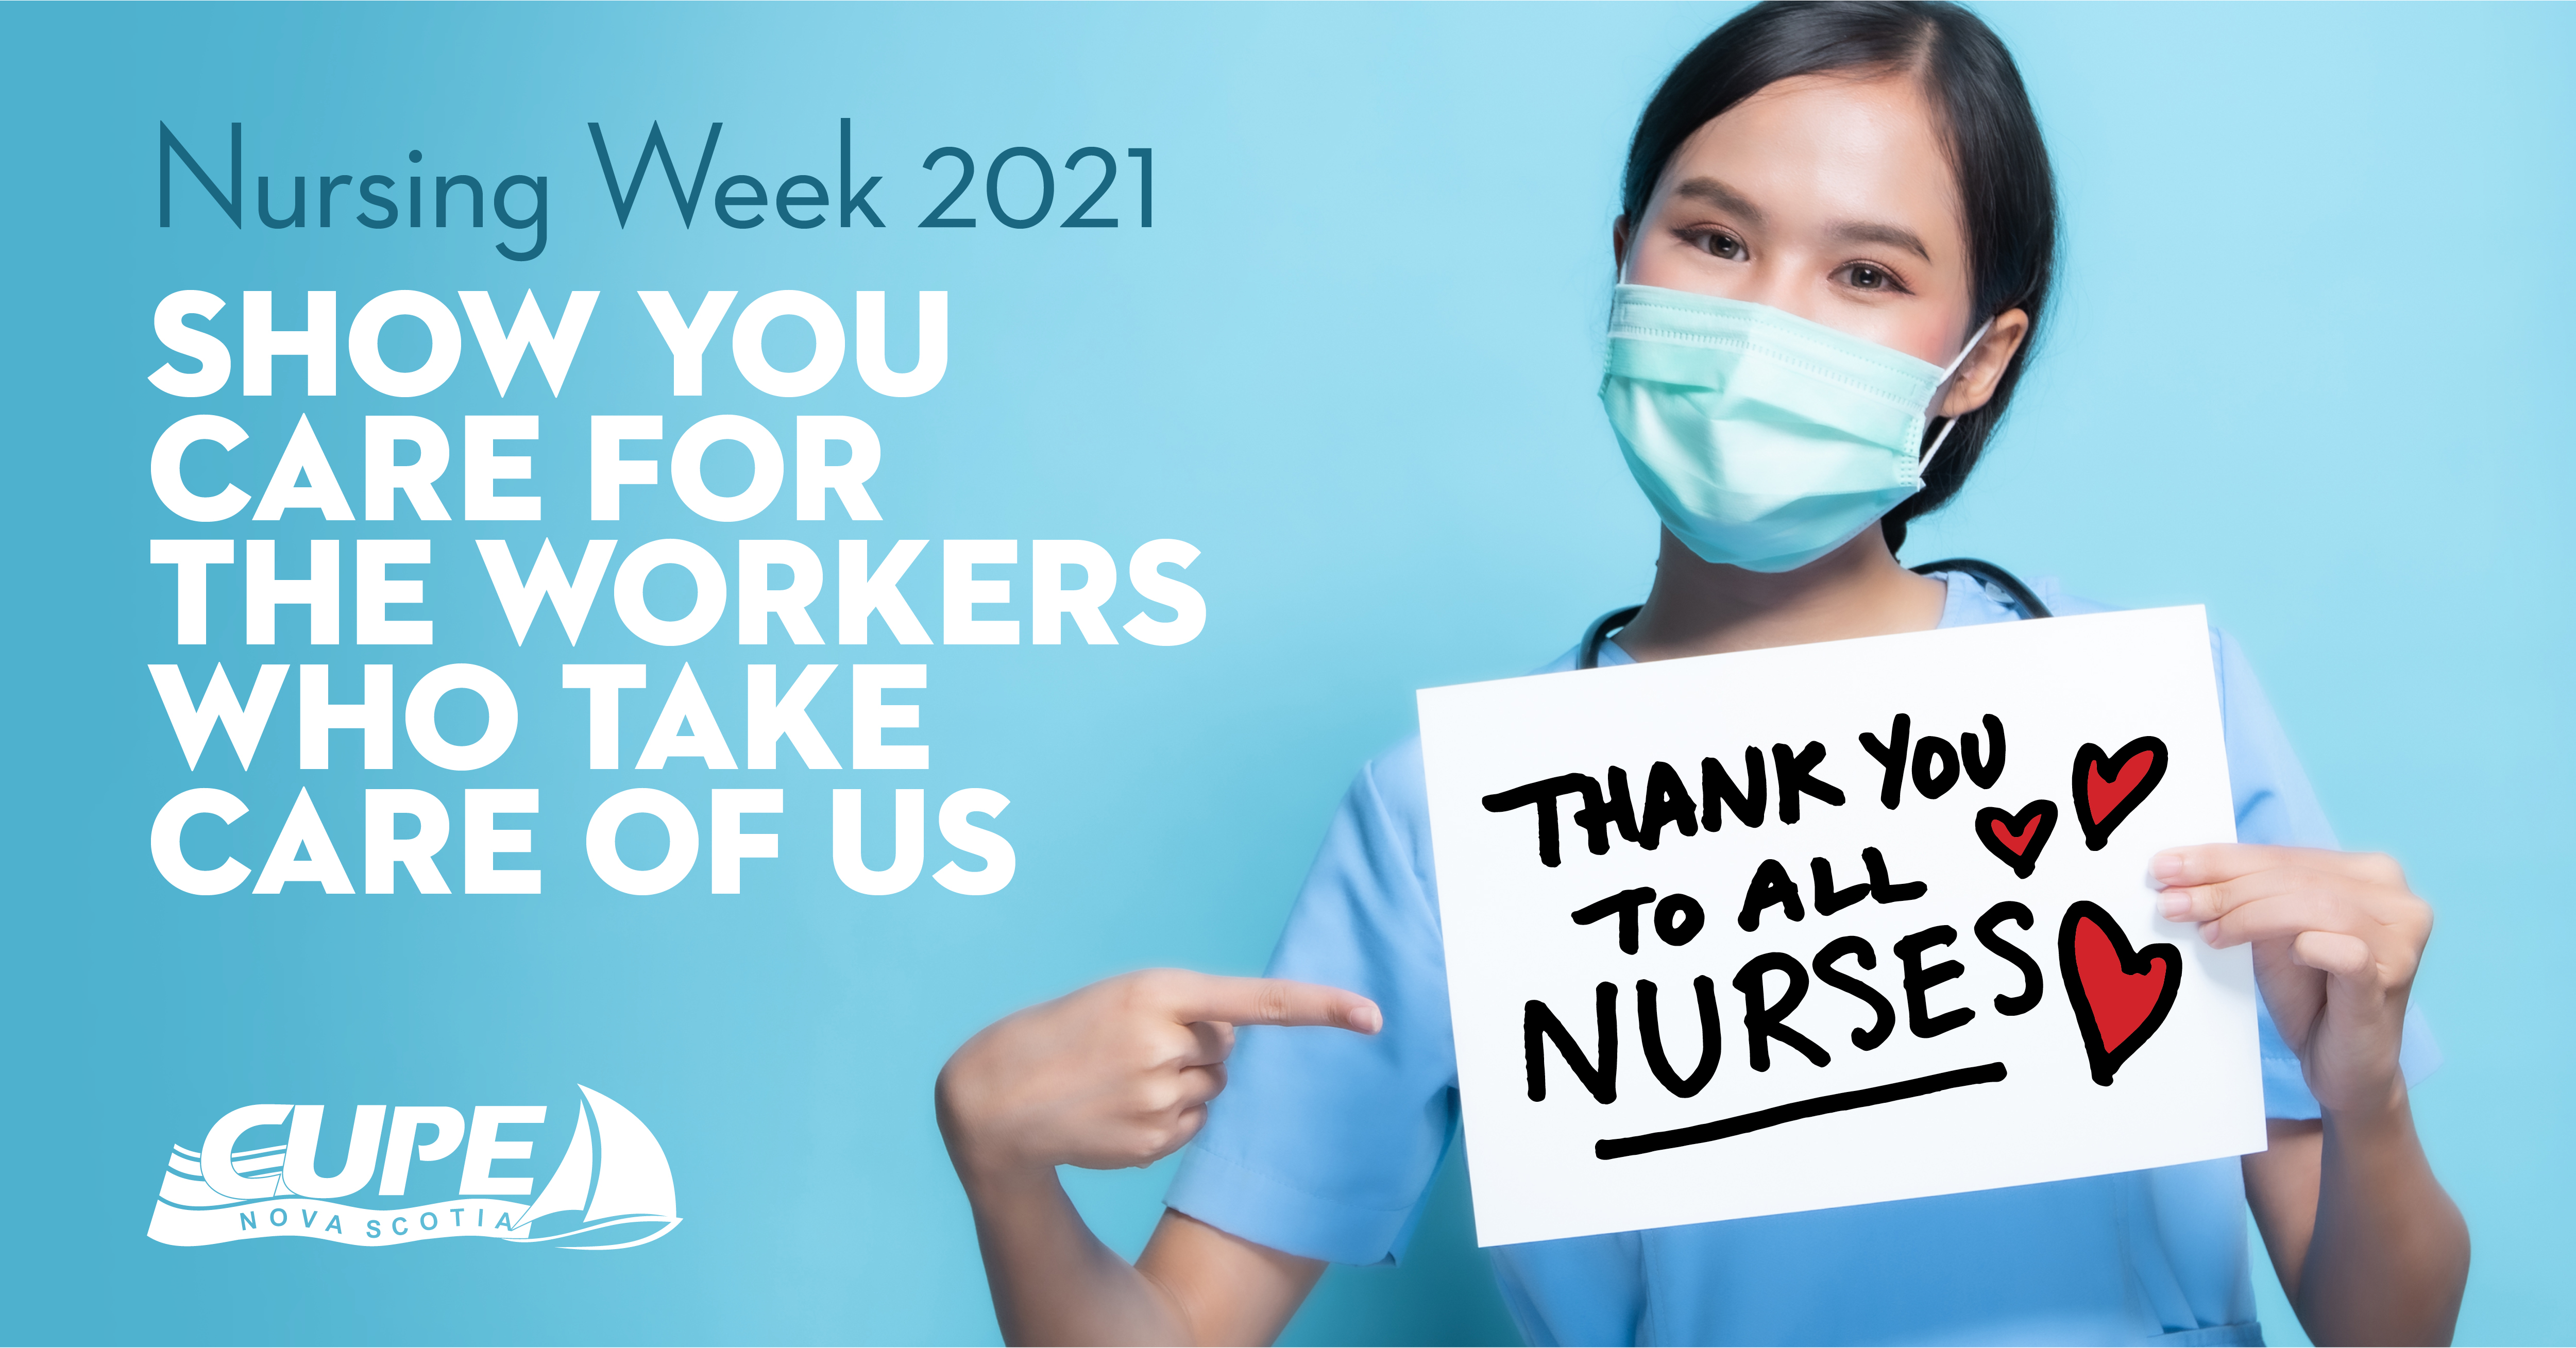 Web banner. Nursing Week 2021: Thank you to all nurses!